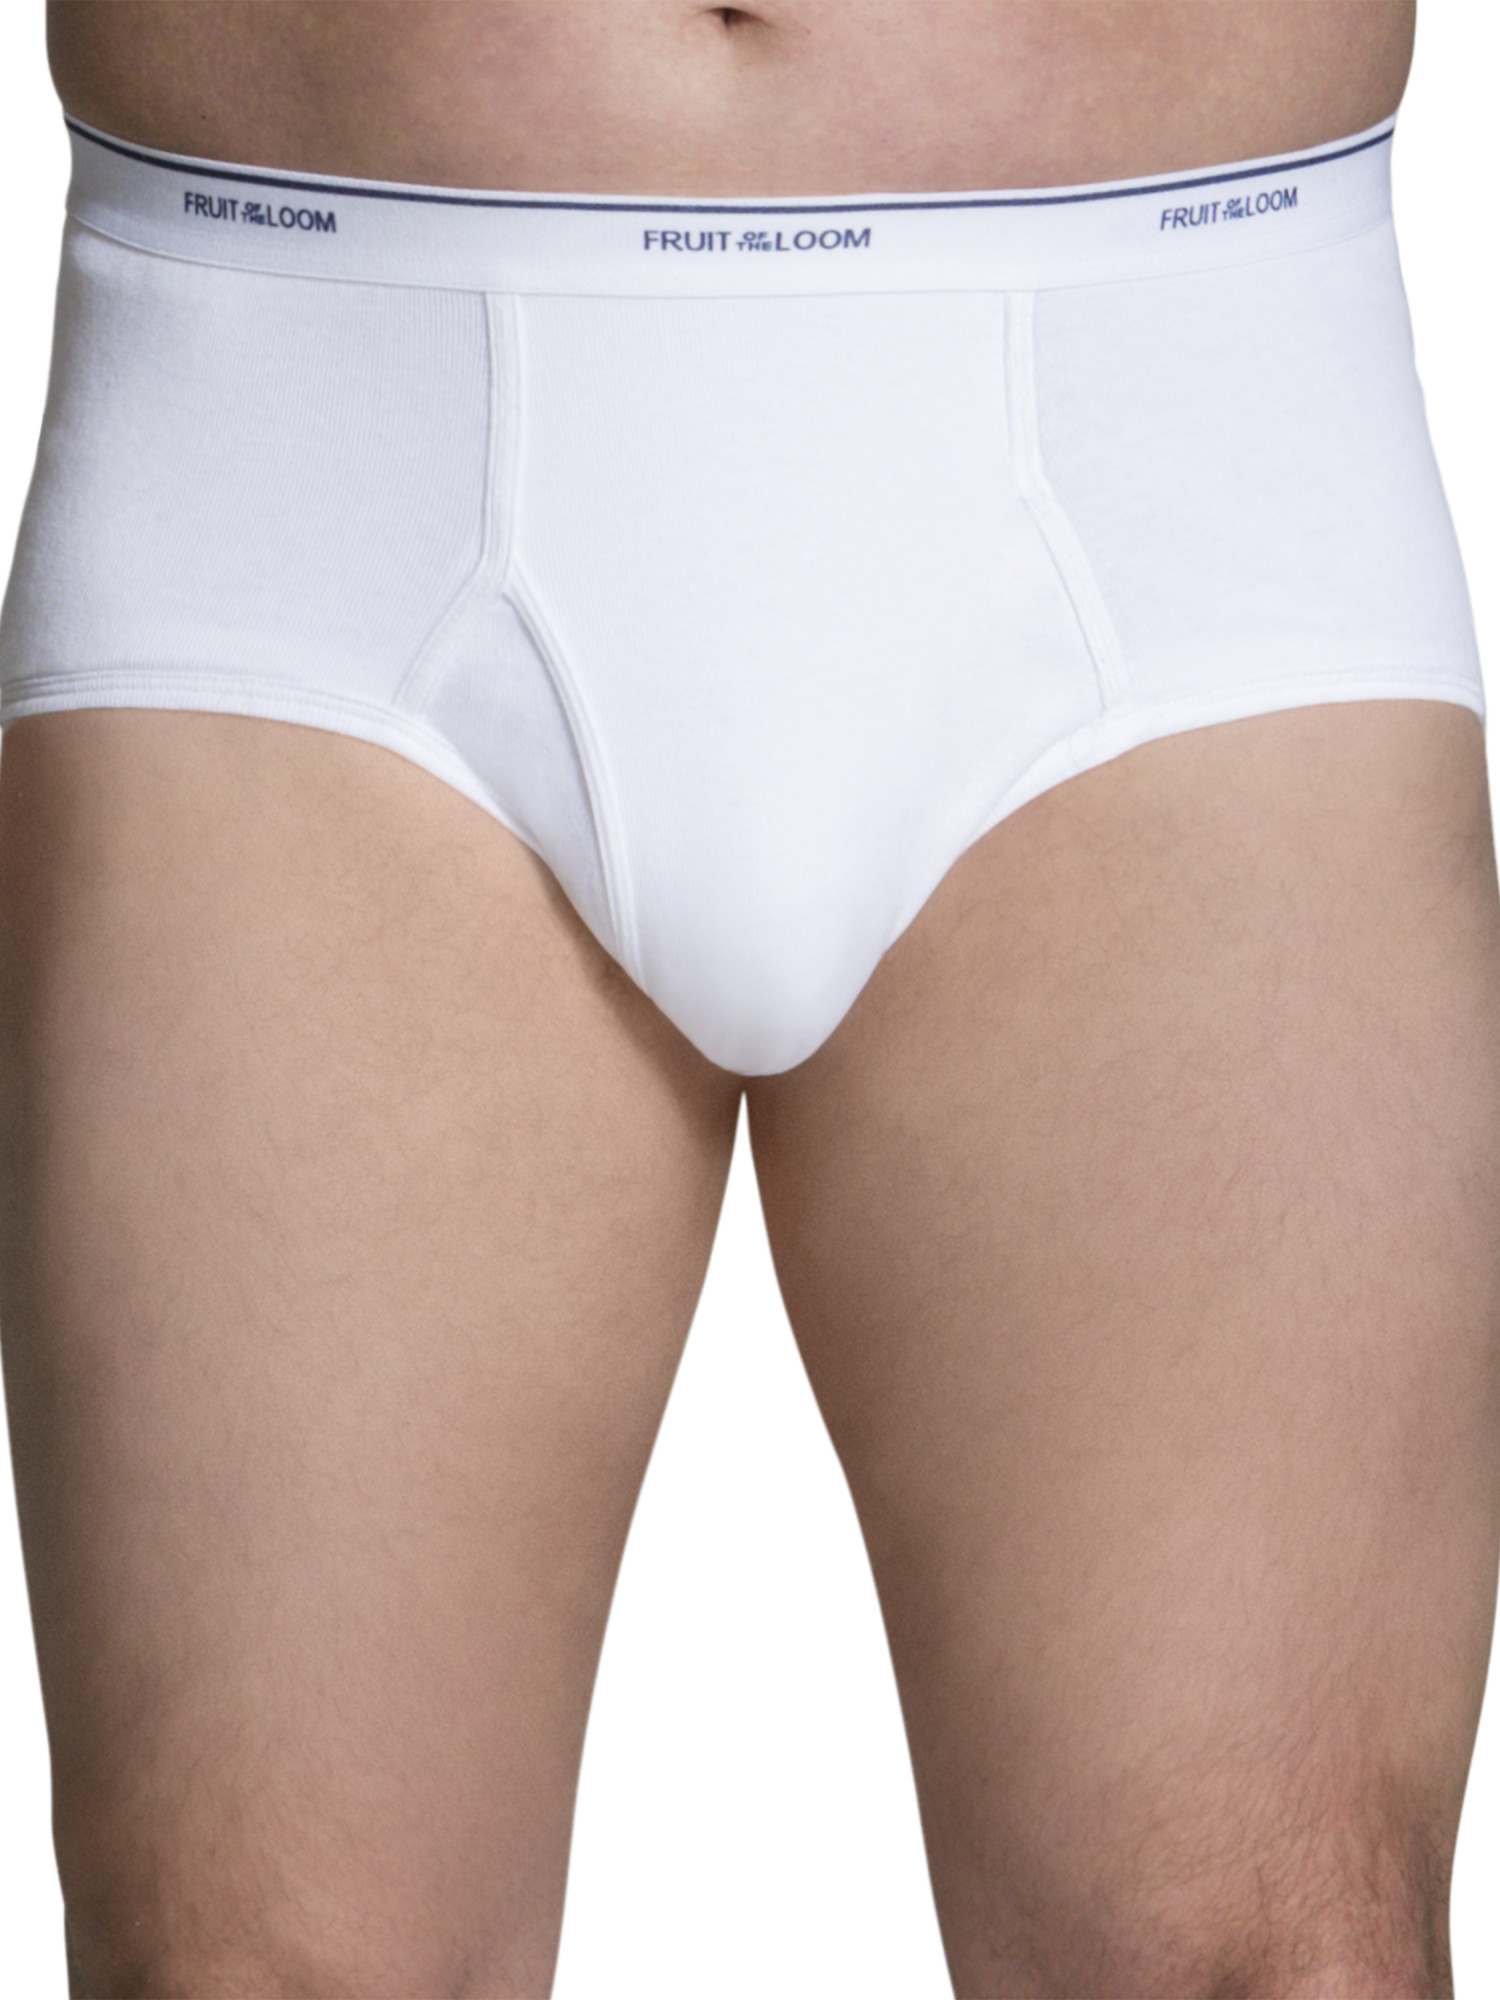 Big Men's Dual Defense Classic White Briefs, Super Value 8 Pack